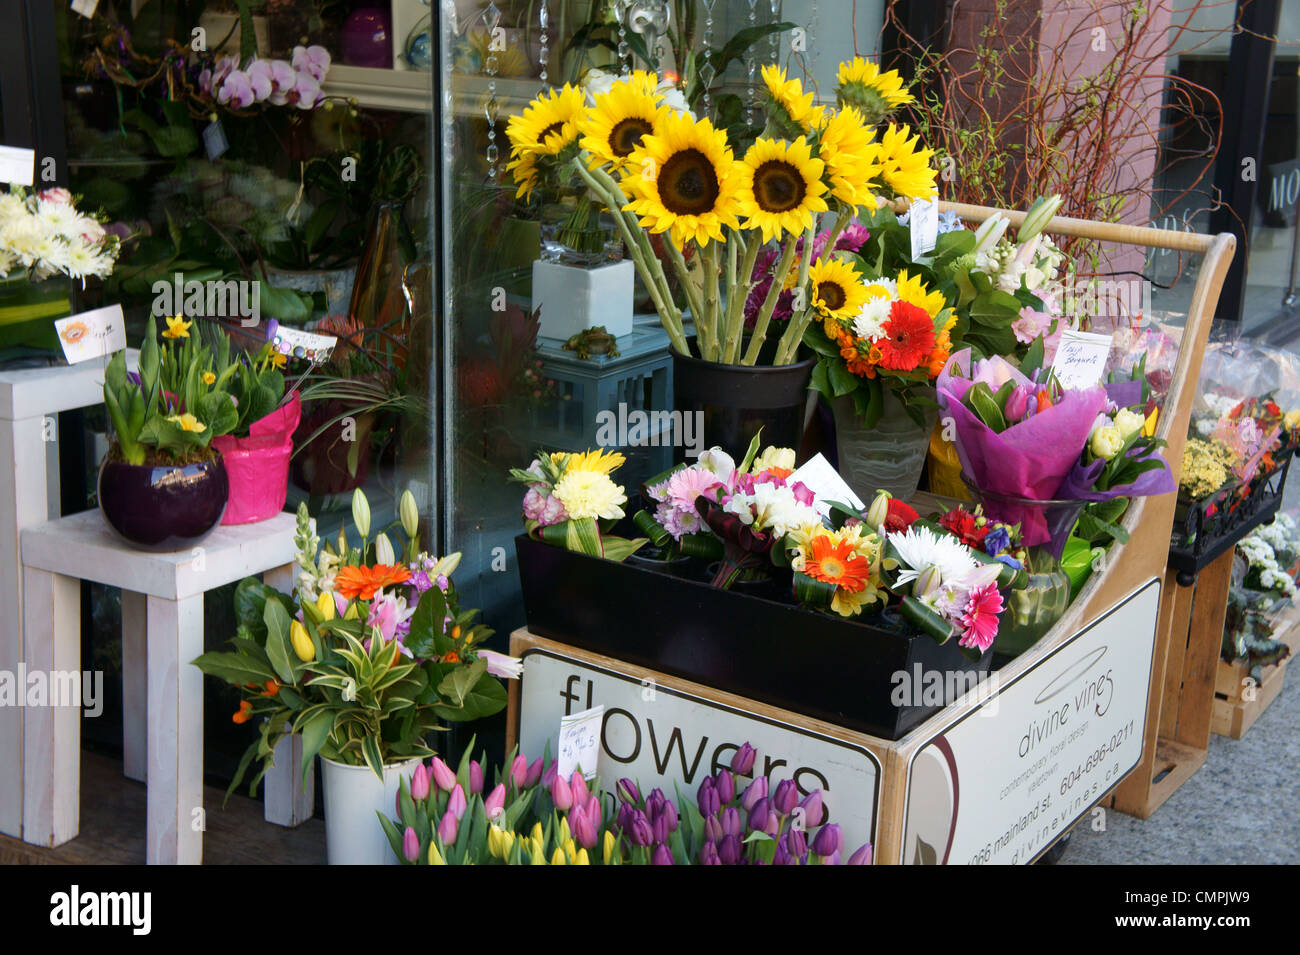 Spring Flower Display Outside A Florist Shop In Yaletown Vancouver